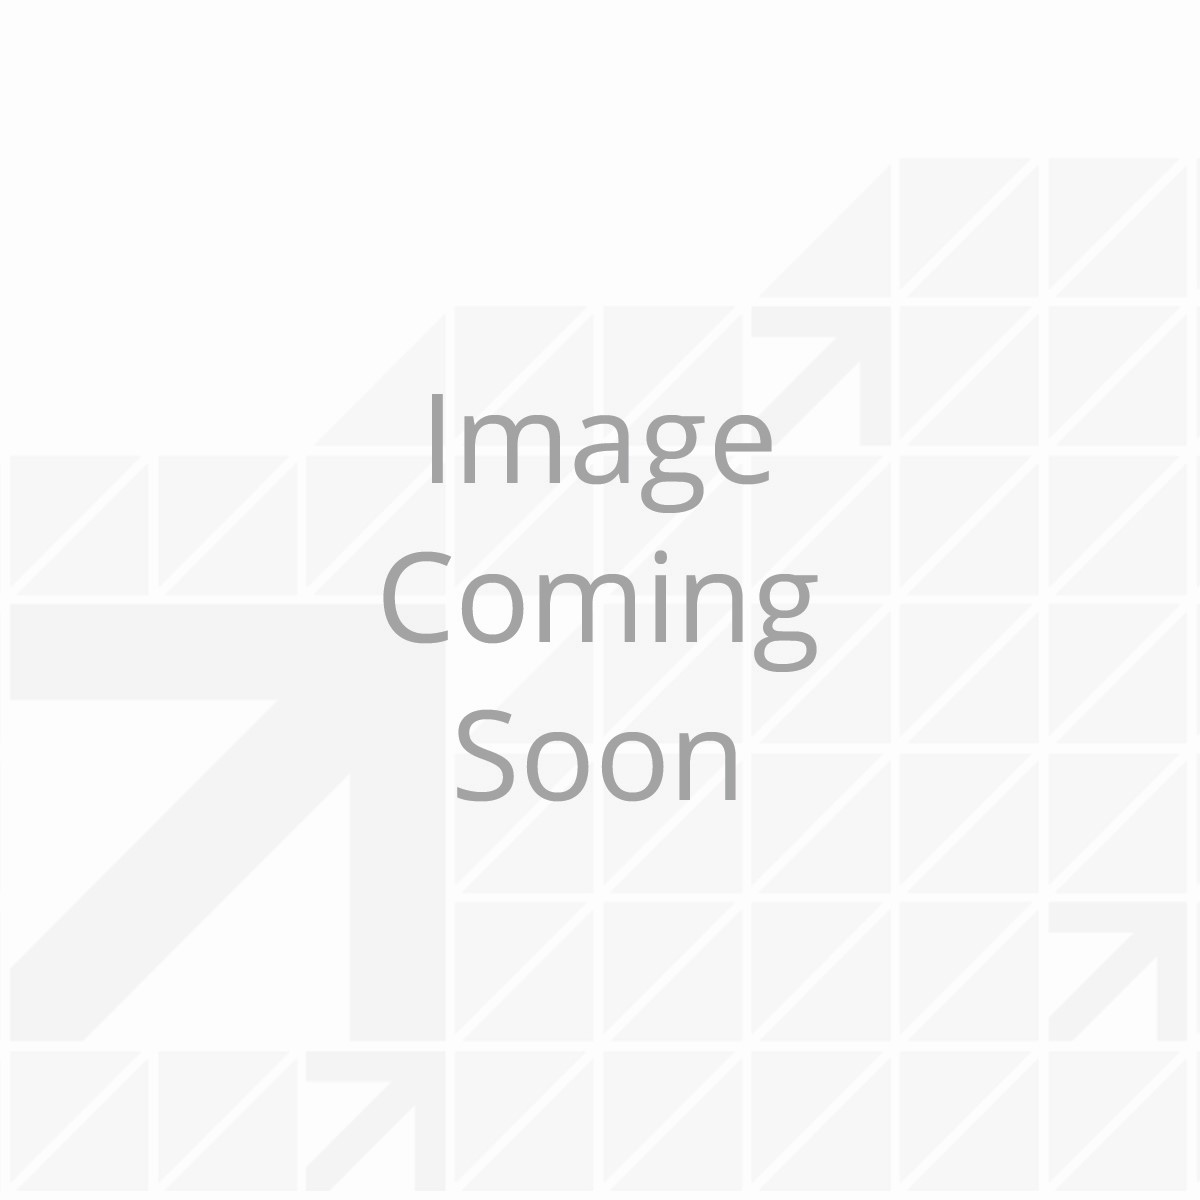 Doorknob and Deadbolt Set for Residential Entry Doors - Keyed Alike